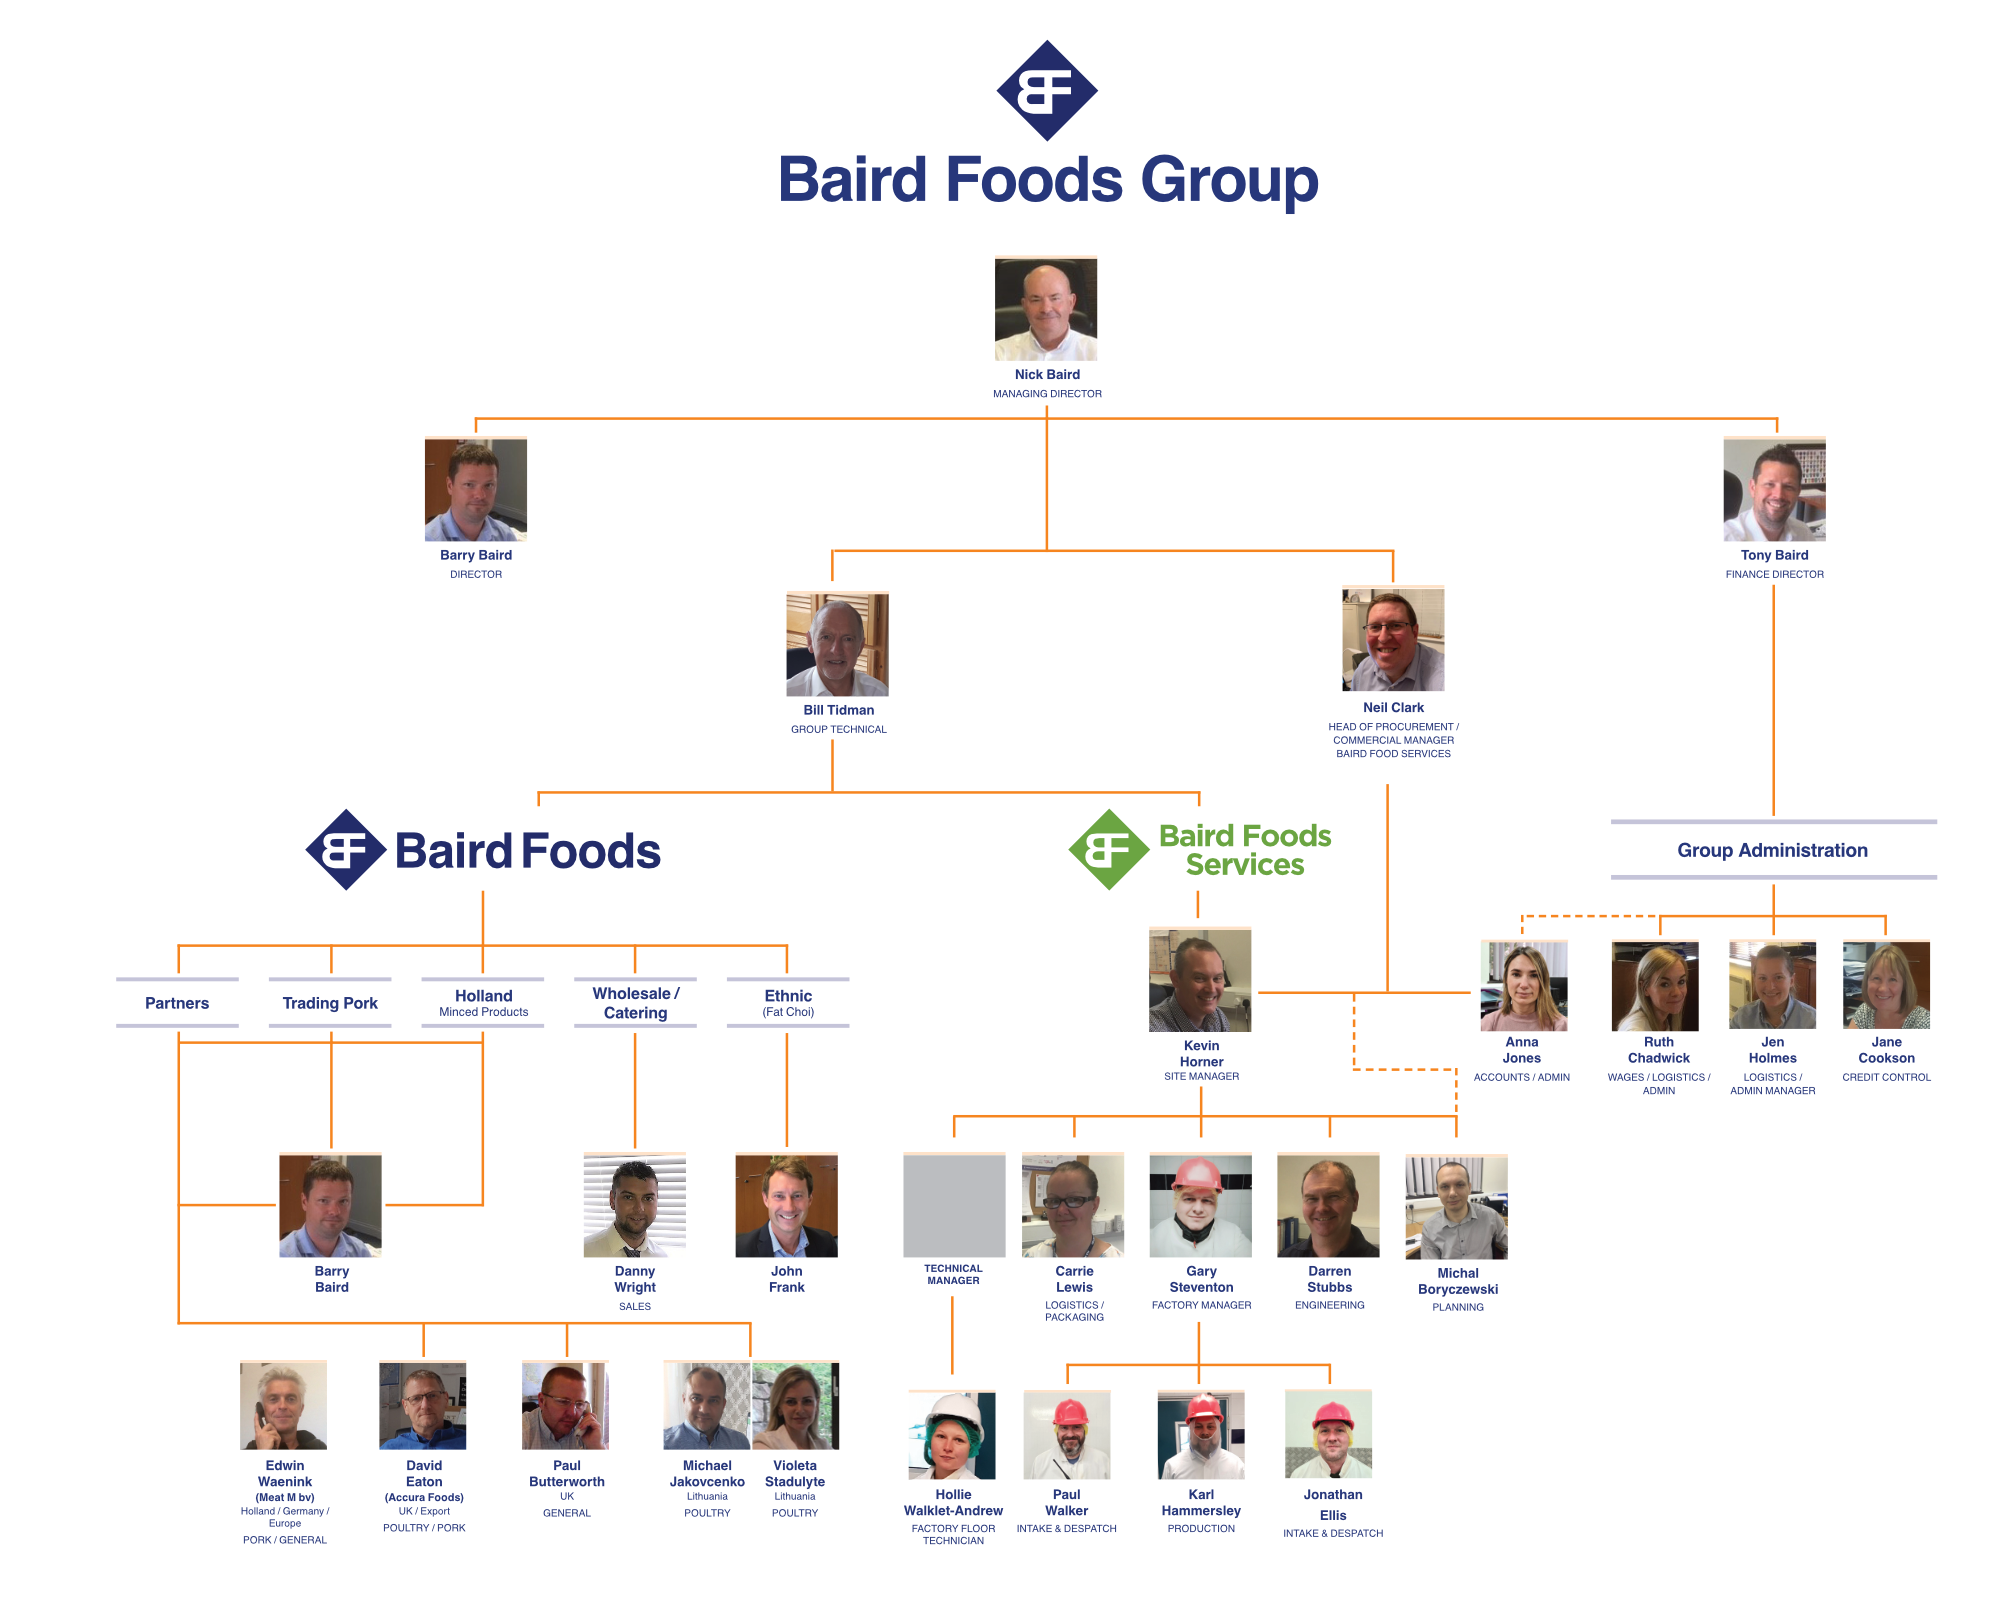 Baird Foods Group Personnel chart